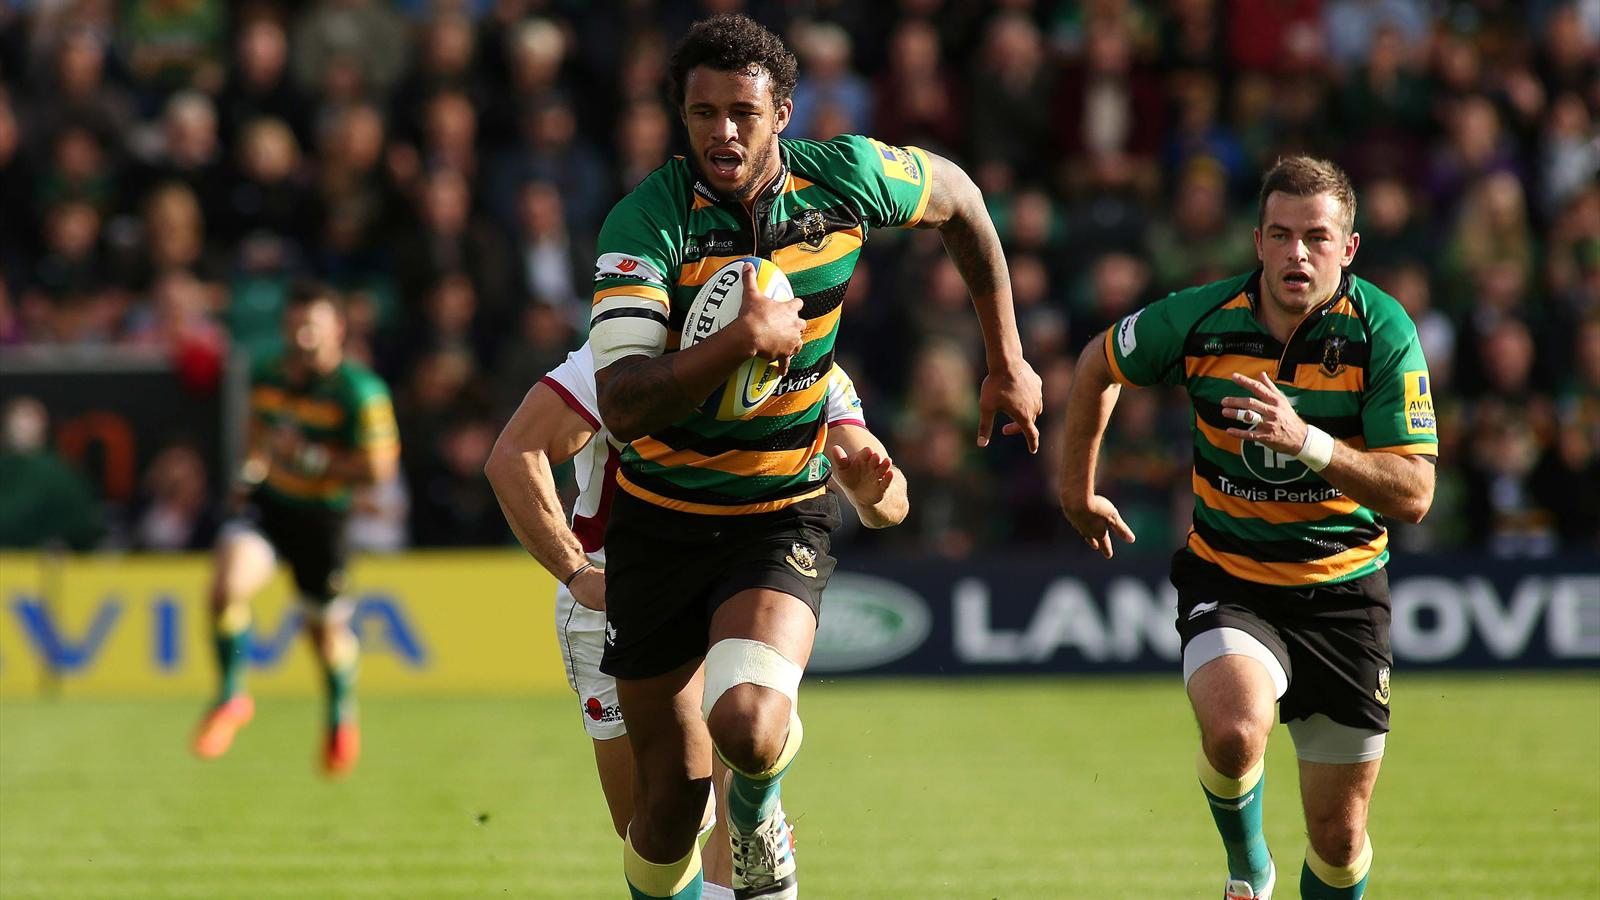 Courtney Lawes (Northampton)